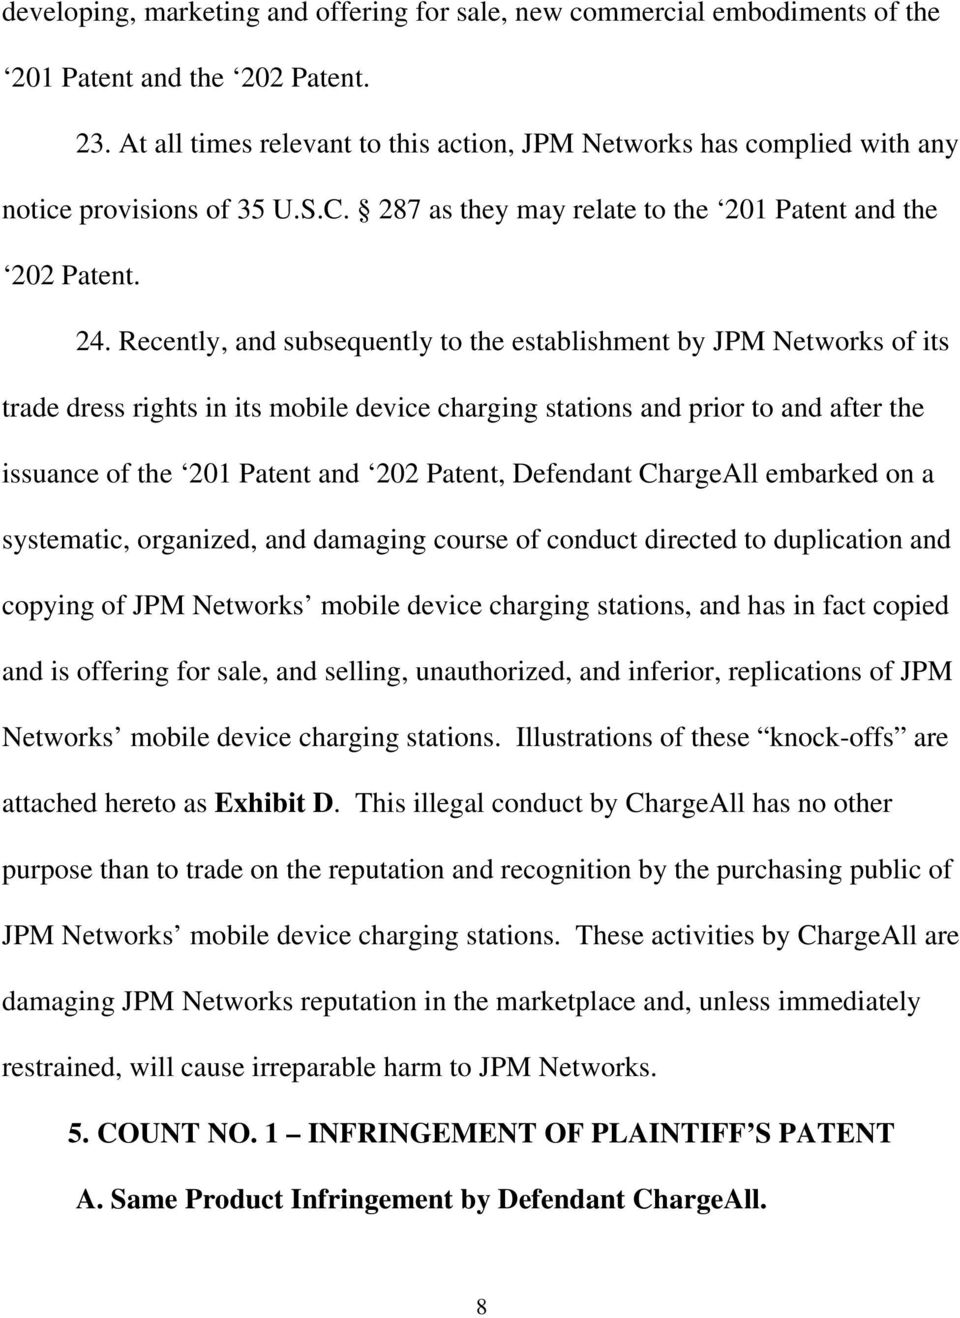 Recently, and subsequently to the establishment by JPM Networks of its trade dress rights in its mobile device charging stations and prior to and after the issuance of the 201 Patent and 202 Patent,